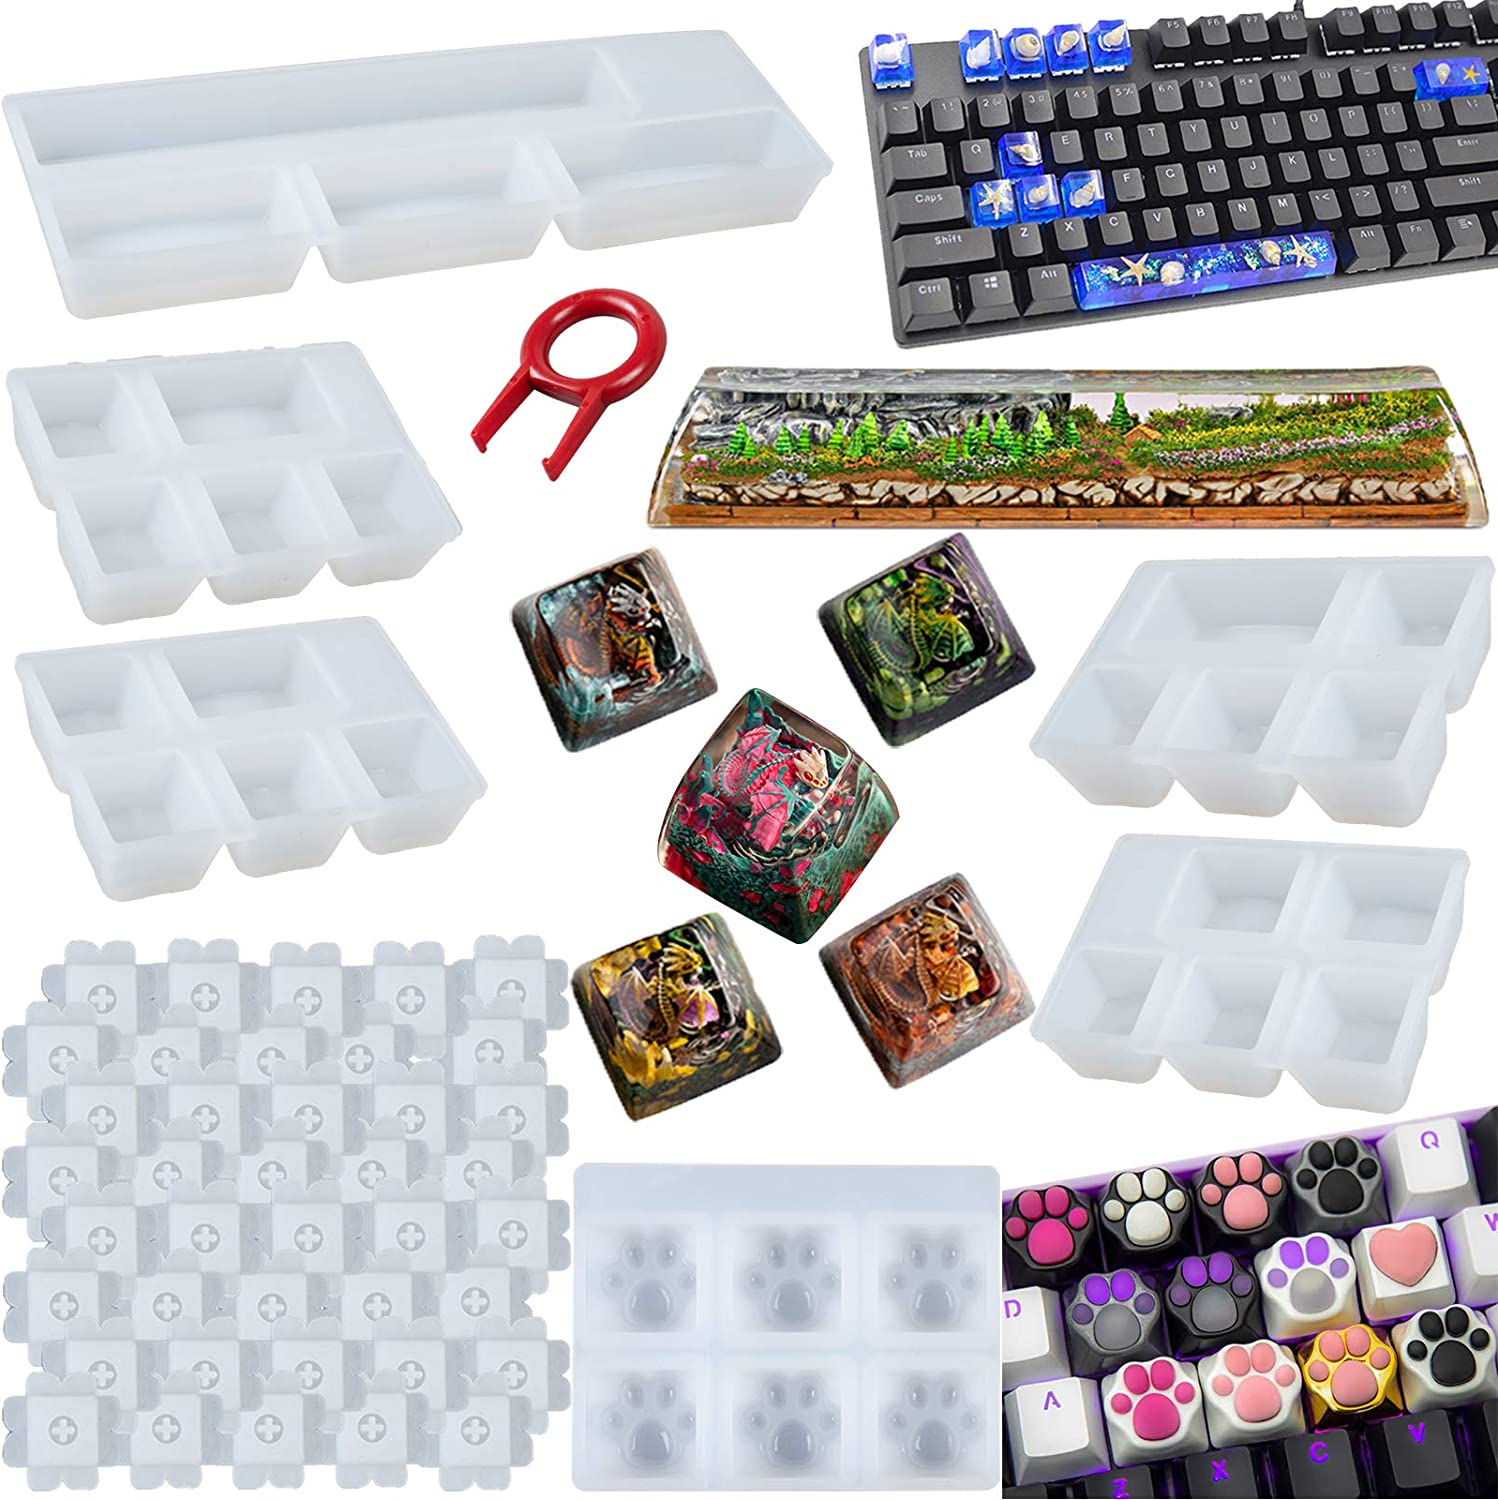 Keyboard Resin Making Tools Silicone Mould Key Cap Resin Mold Keyboard Molds